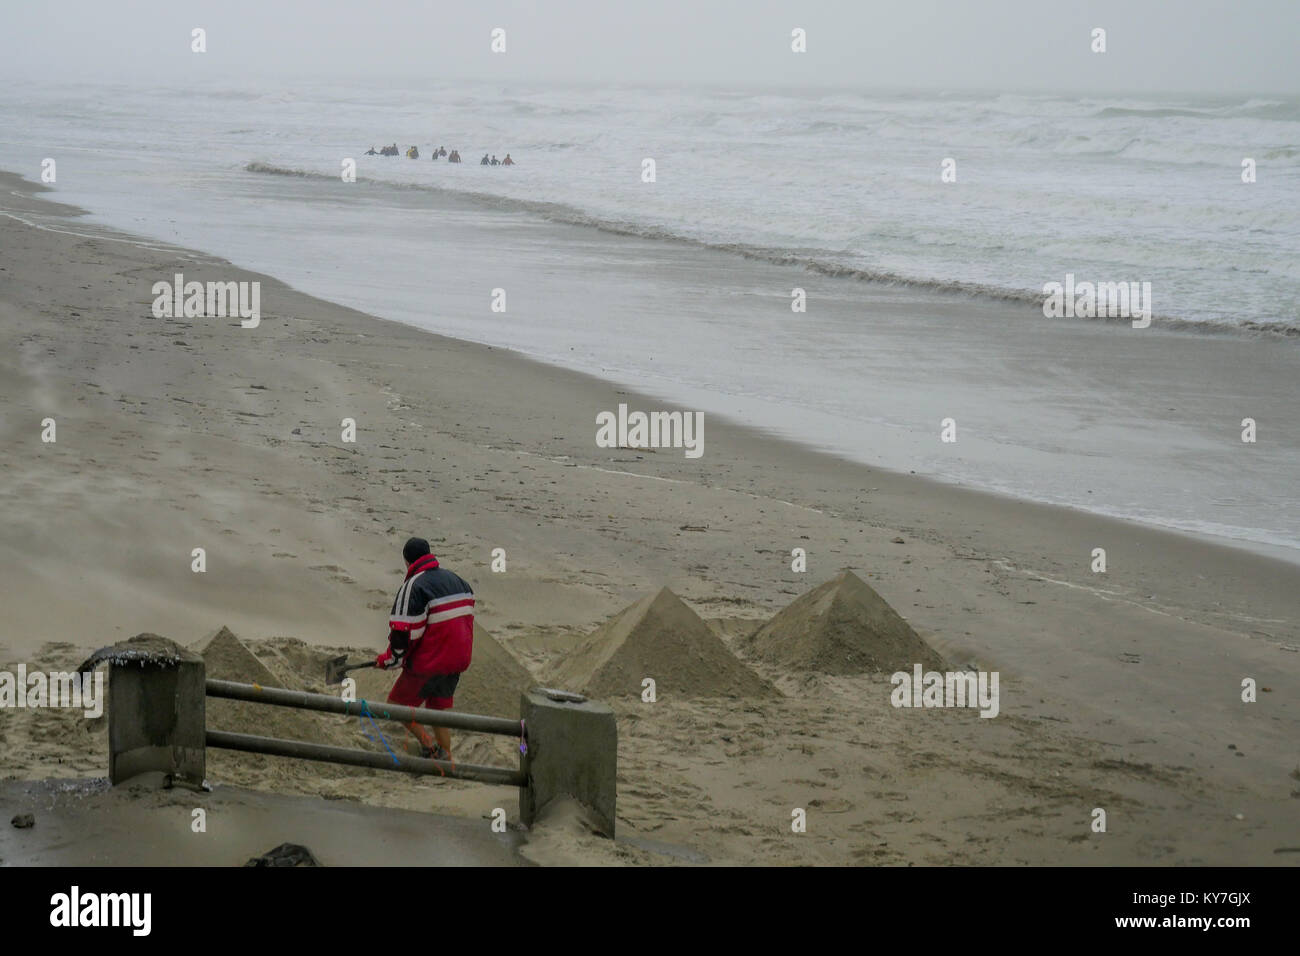 Seaside view at Fort-Mahon-Plage, Somme, Hauts-de-France, France - Stock Image